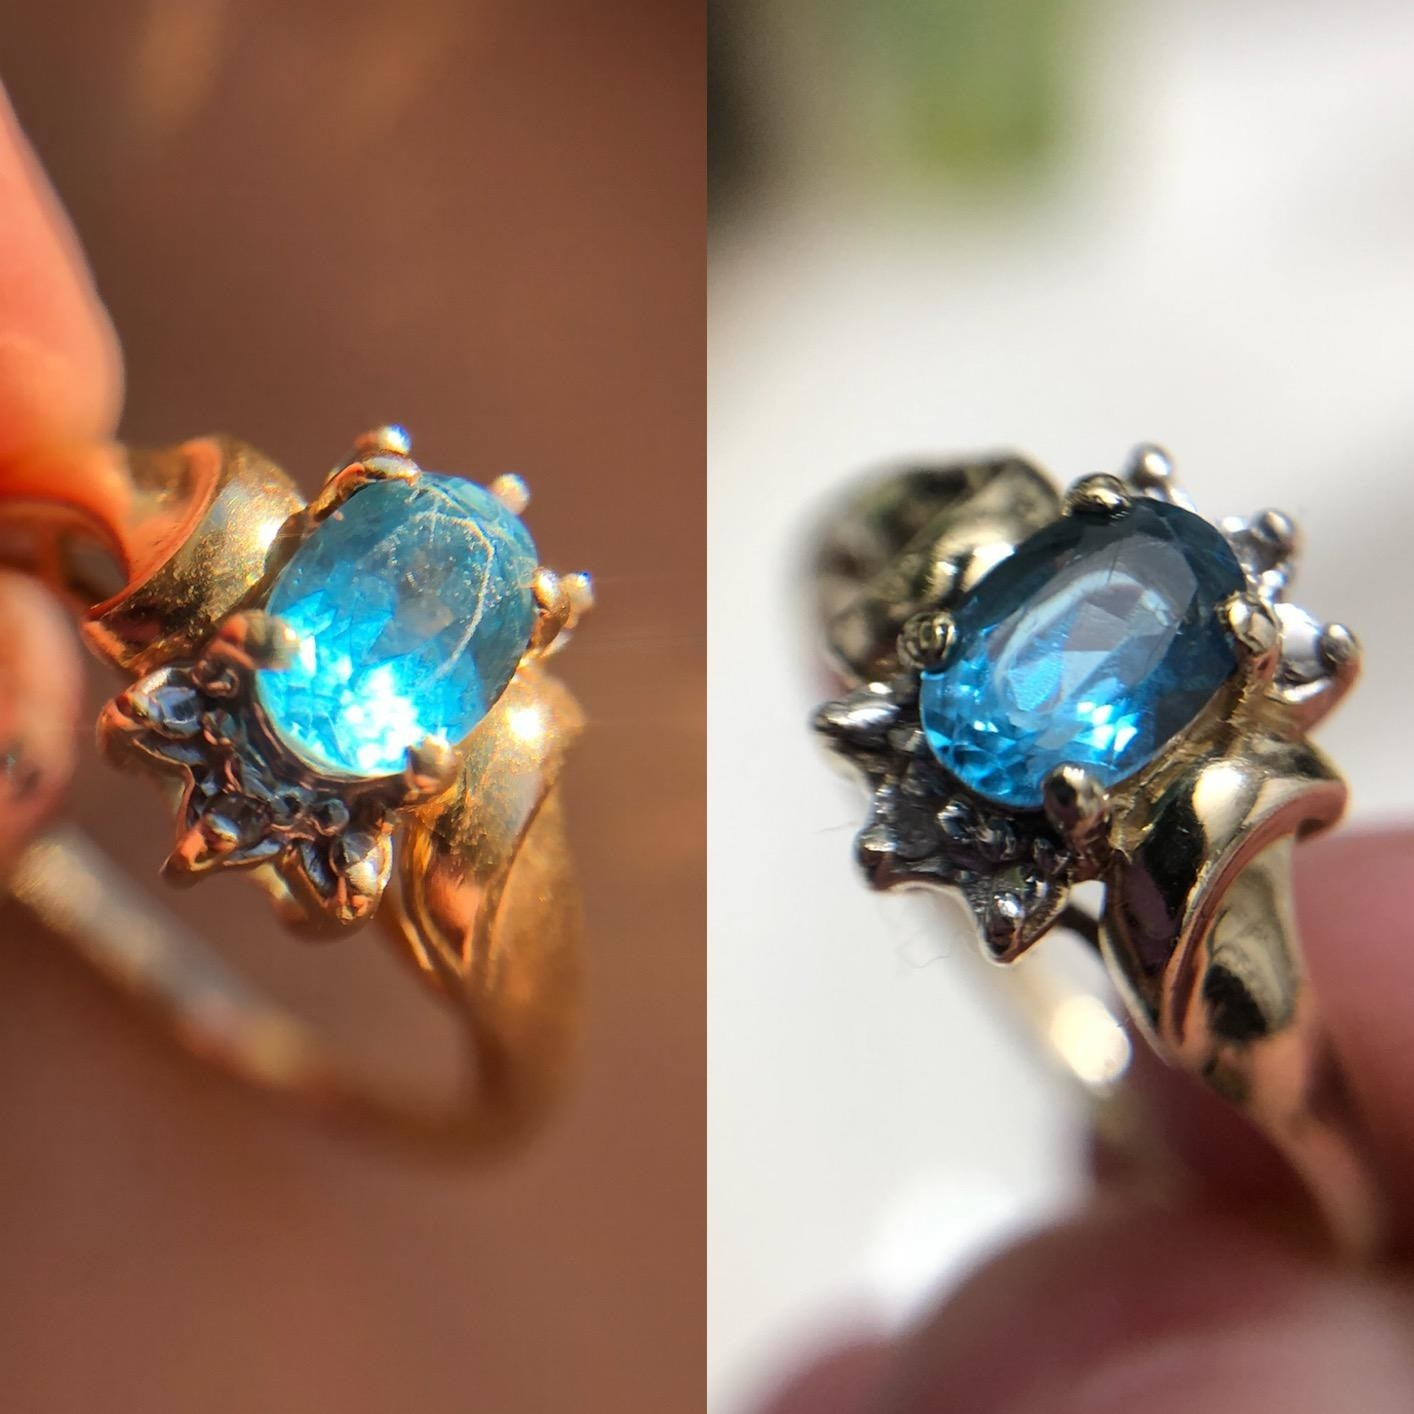 A split image with a ring with a dull blue gem on the left side and the same ring on the right side where the gem is clear and clean.